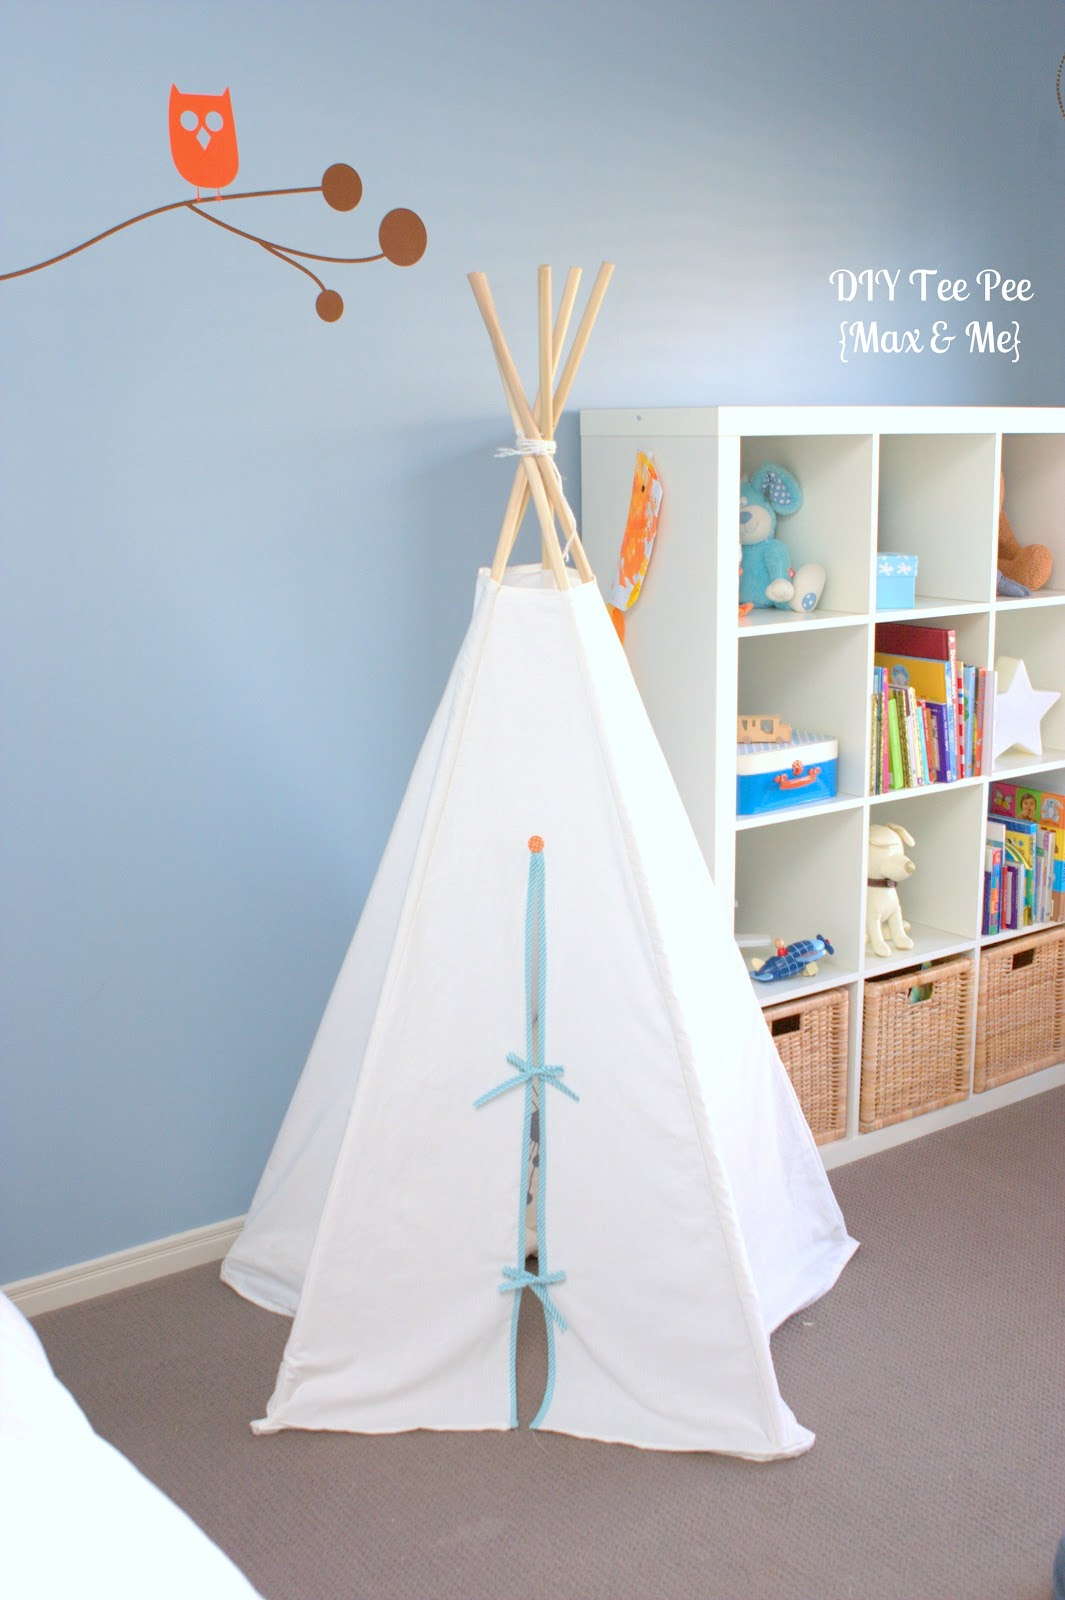 Simple white teepee in blue room, via max and me